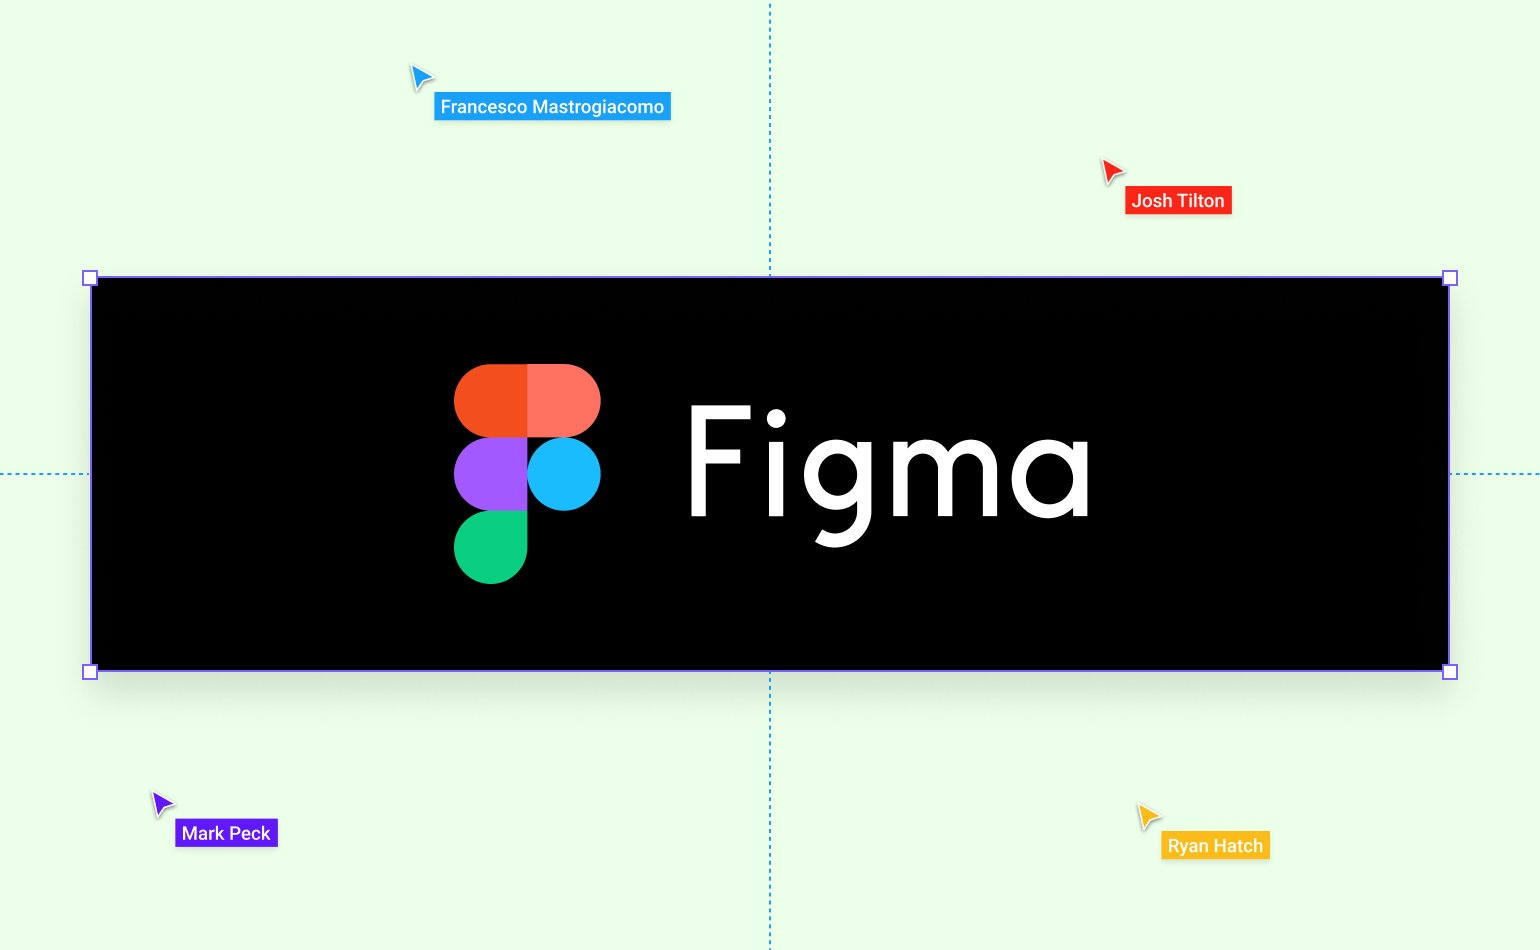 Figma logo and hero image with four cursors indicating work and team collaboration.